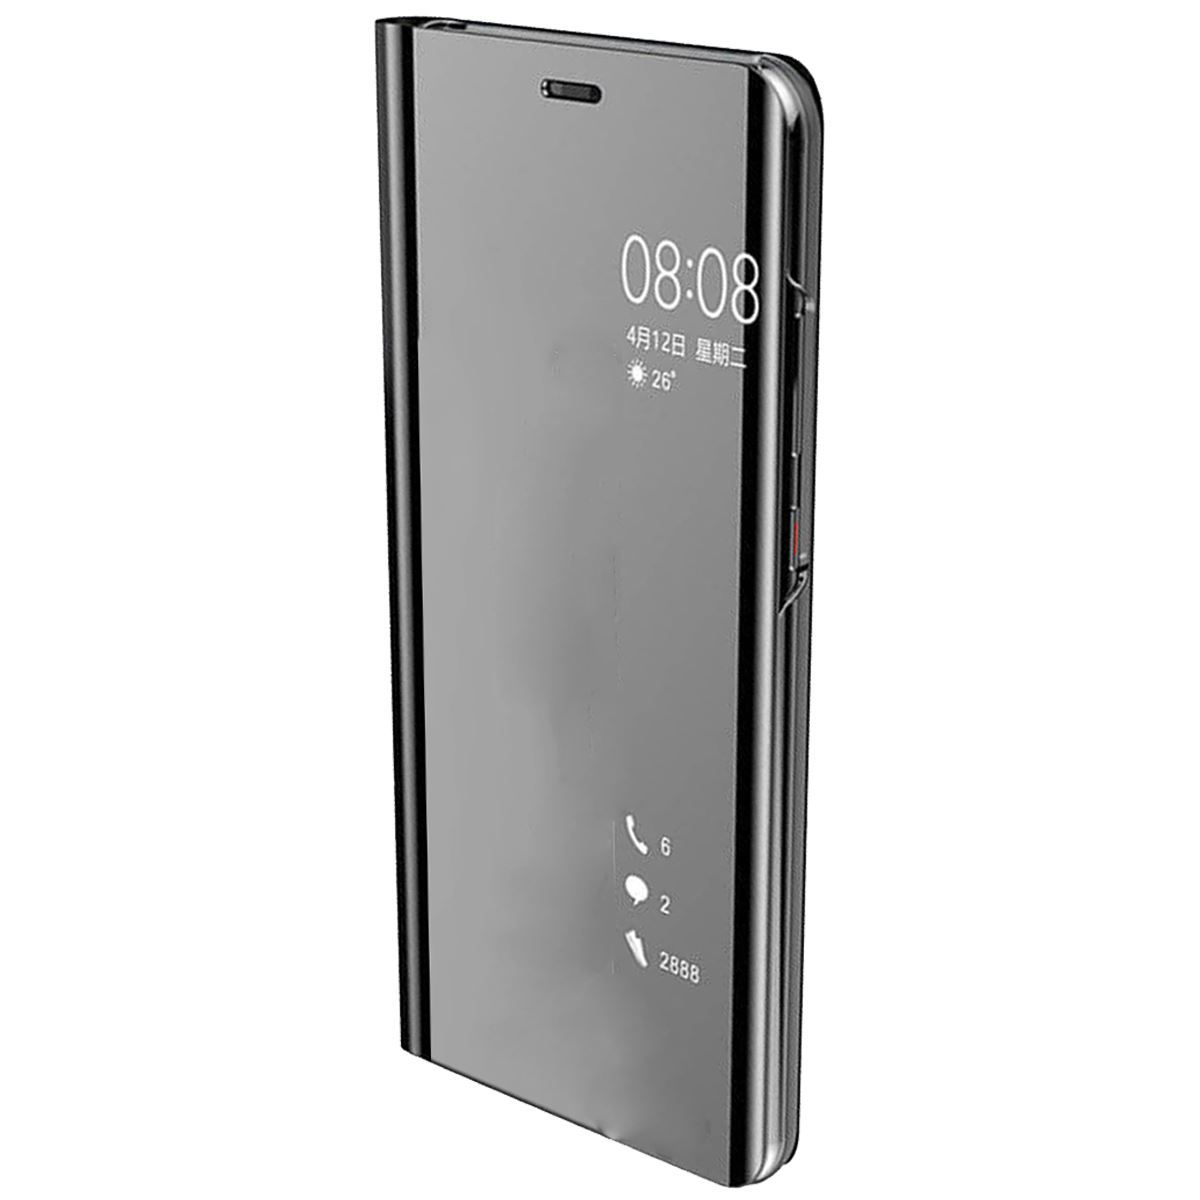 Huawei P Smart Case Smart View Mirror Flip Stand Cover - Black